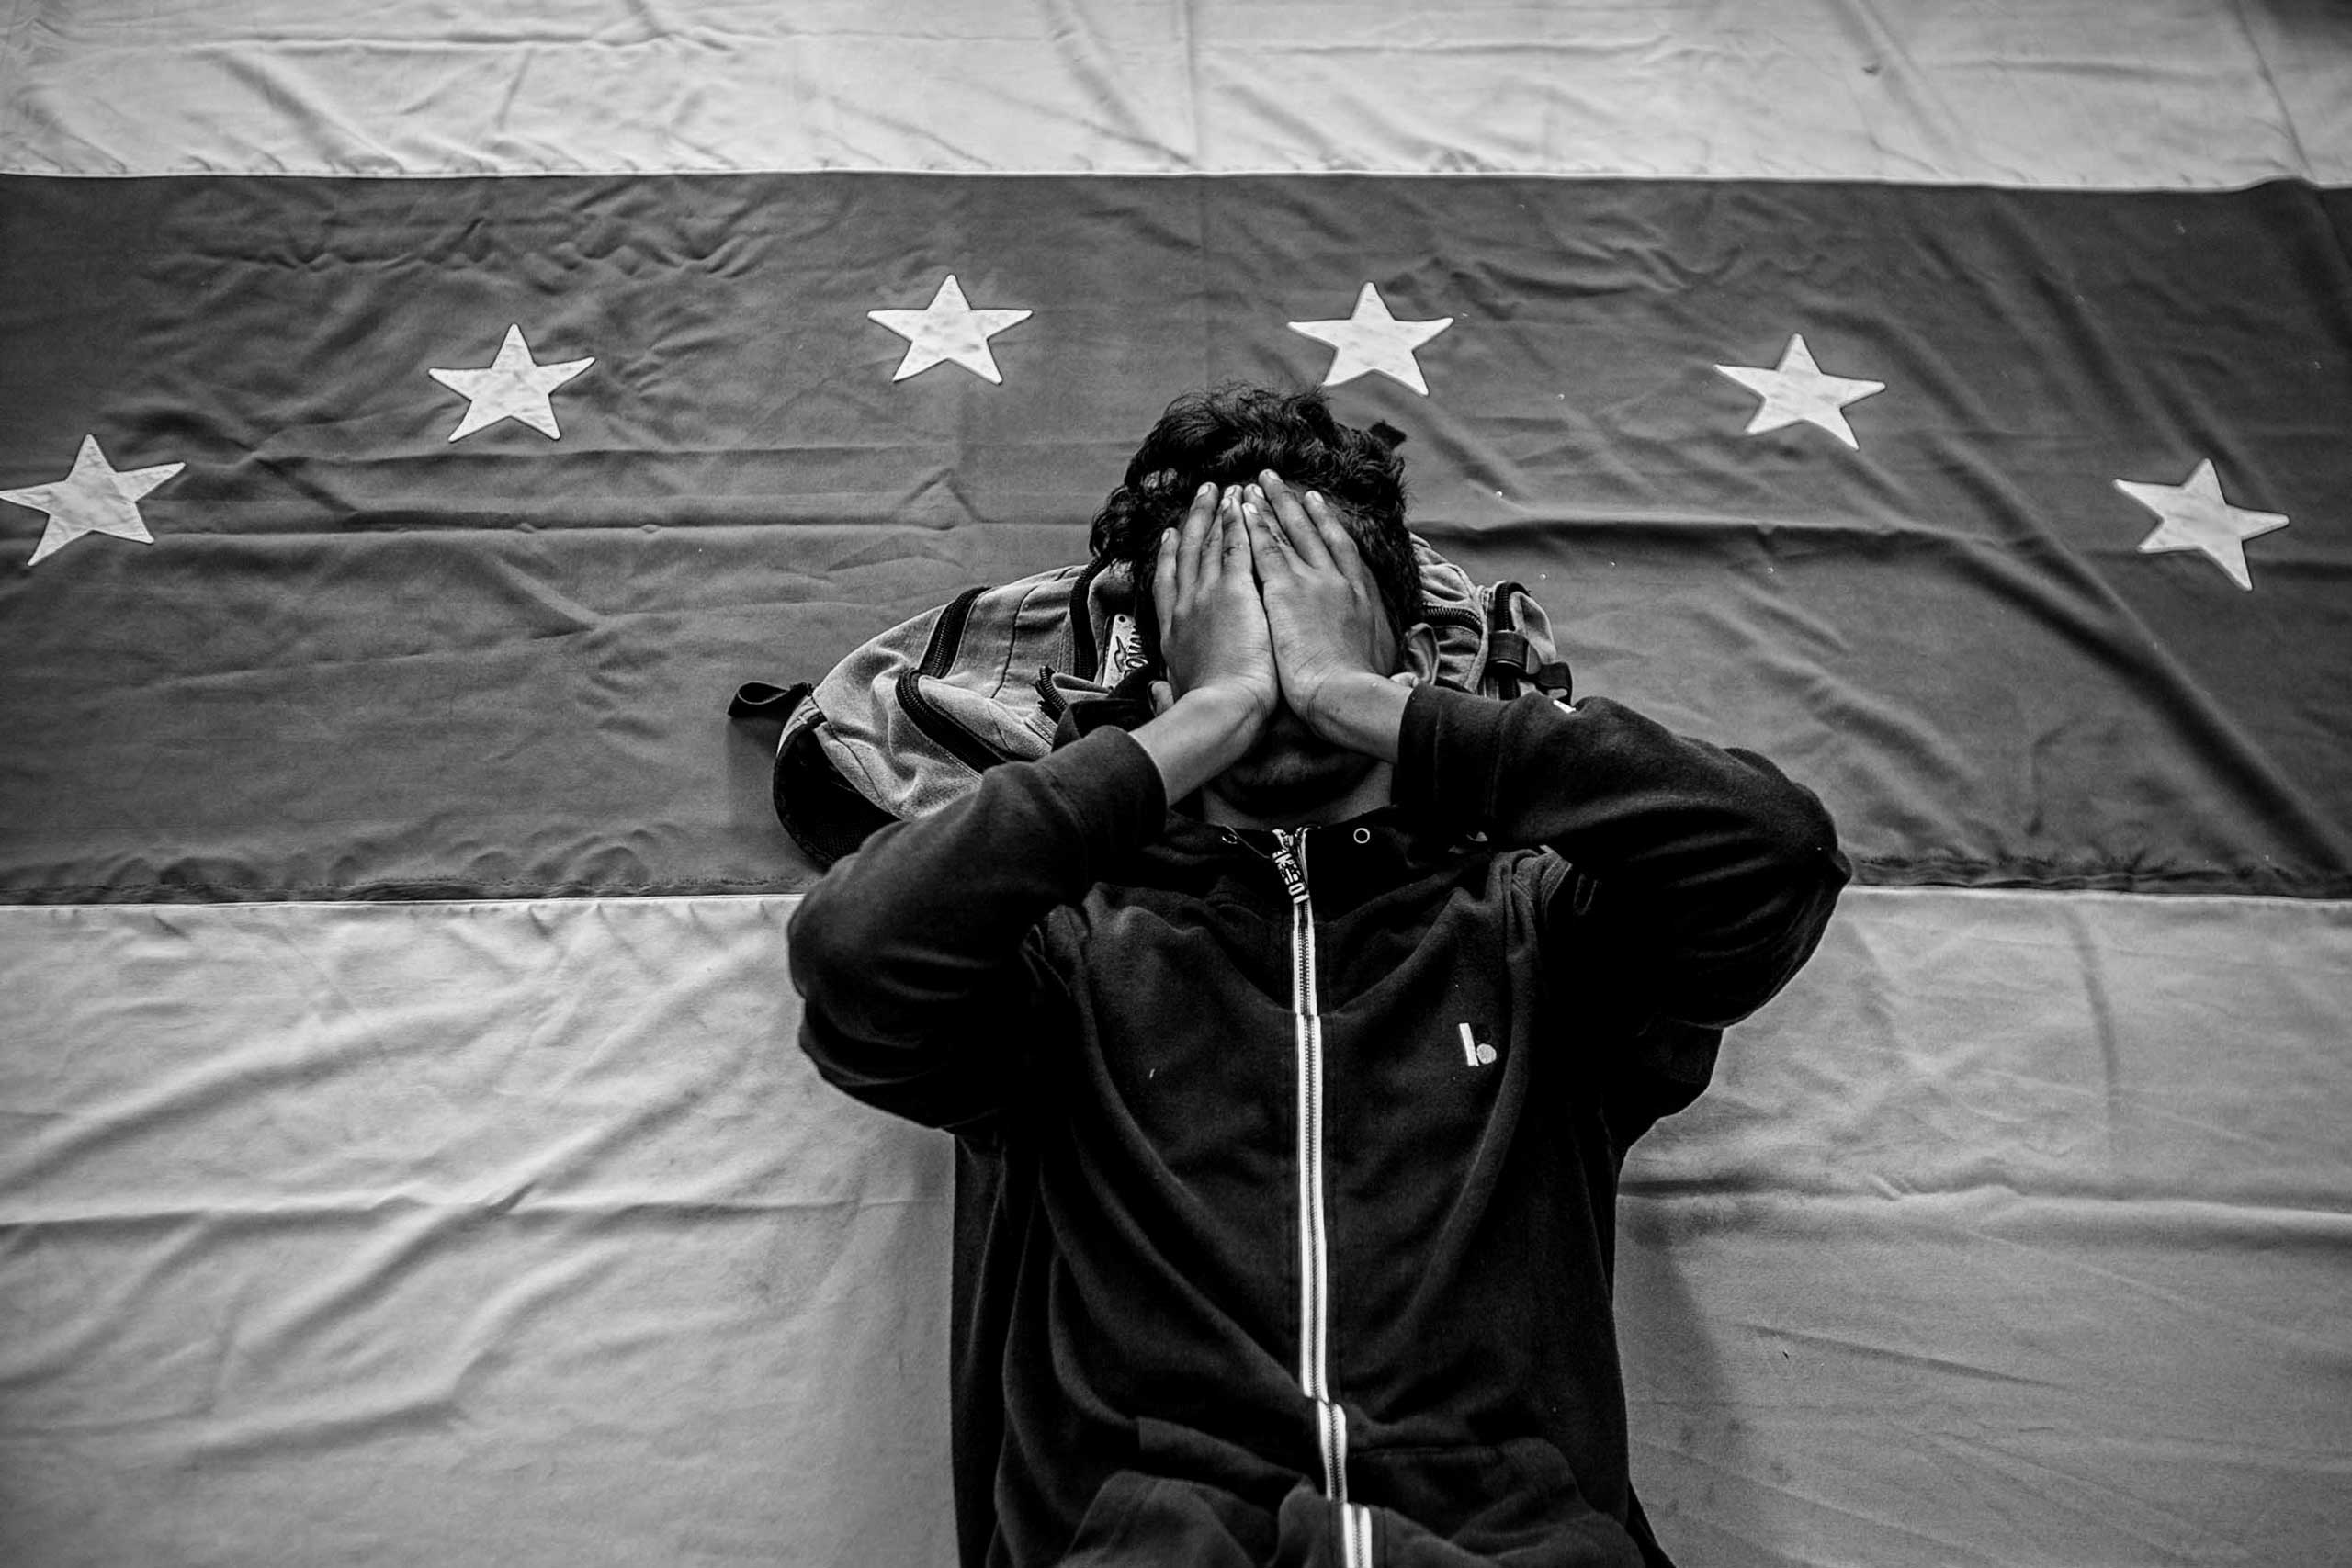 A man covers his face while lying on a Venezuelan flag during a demonstration to demand the release of Metropolitan Mayor Antonio Ledezma. The mayor was arrested under the charges of conspiracy against Venezuela's President Nicolás Maduro. Caracas, February 2015.